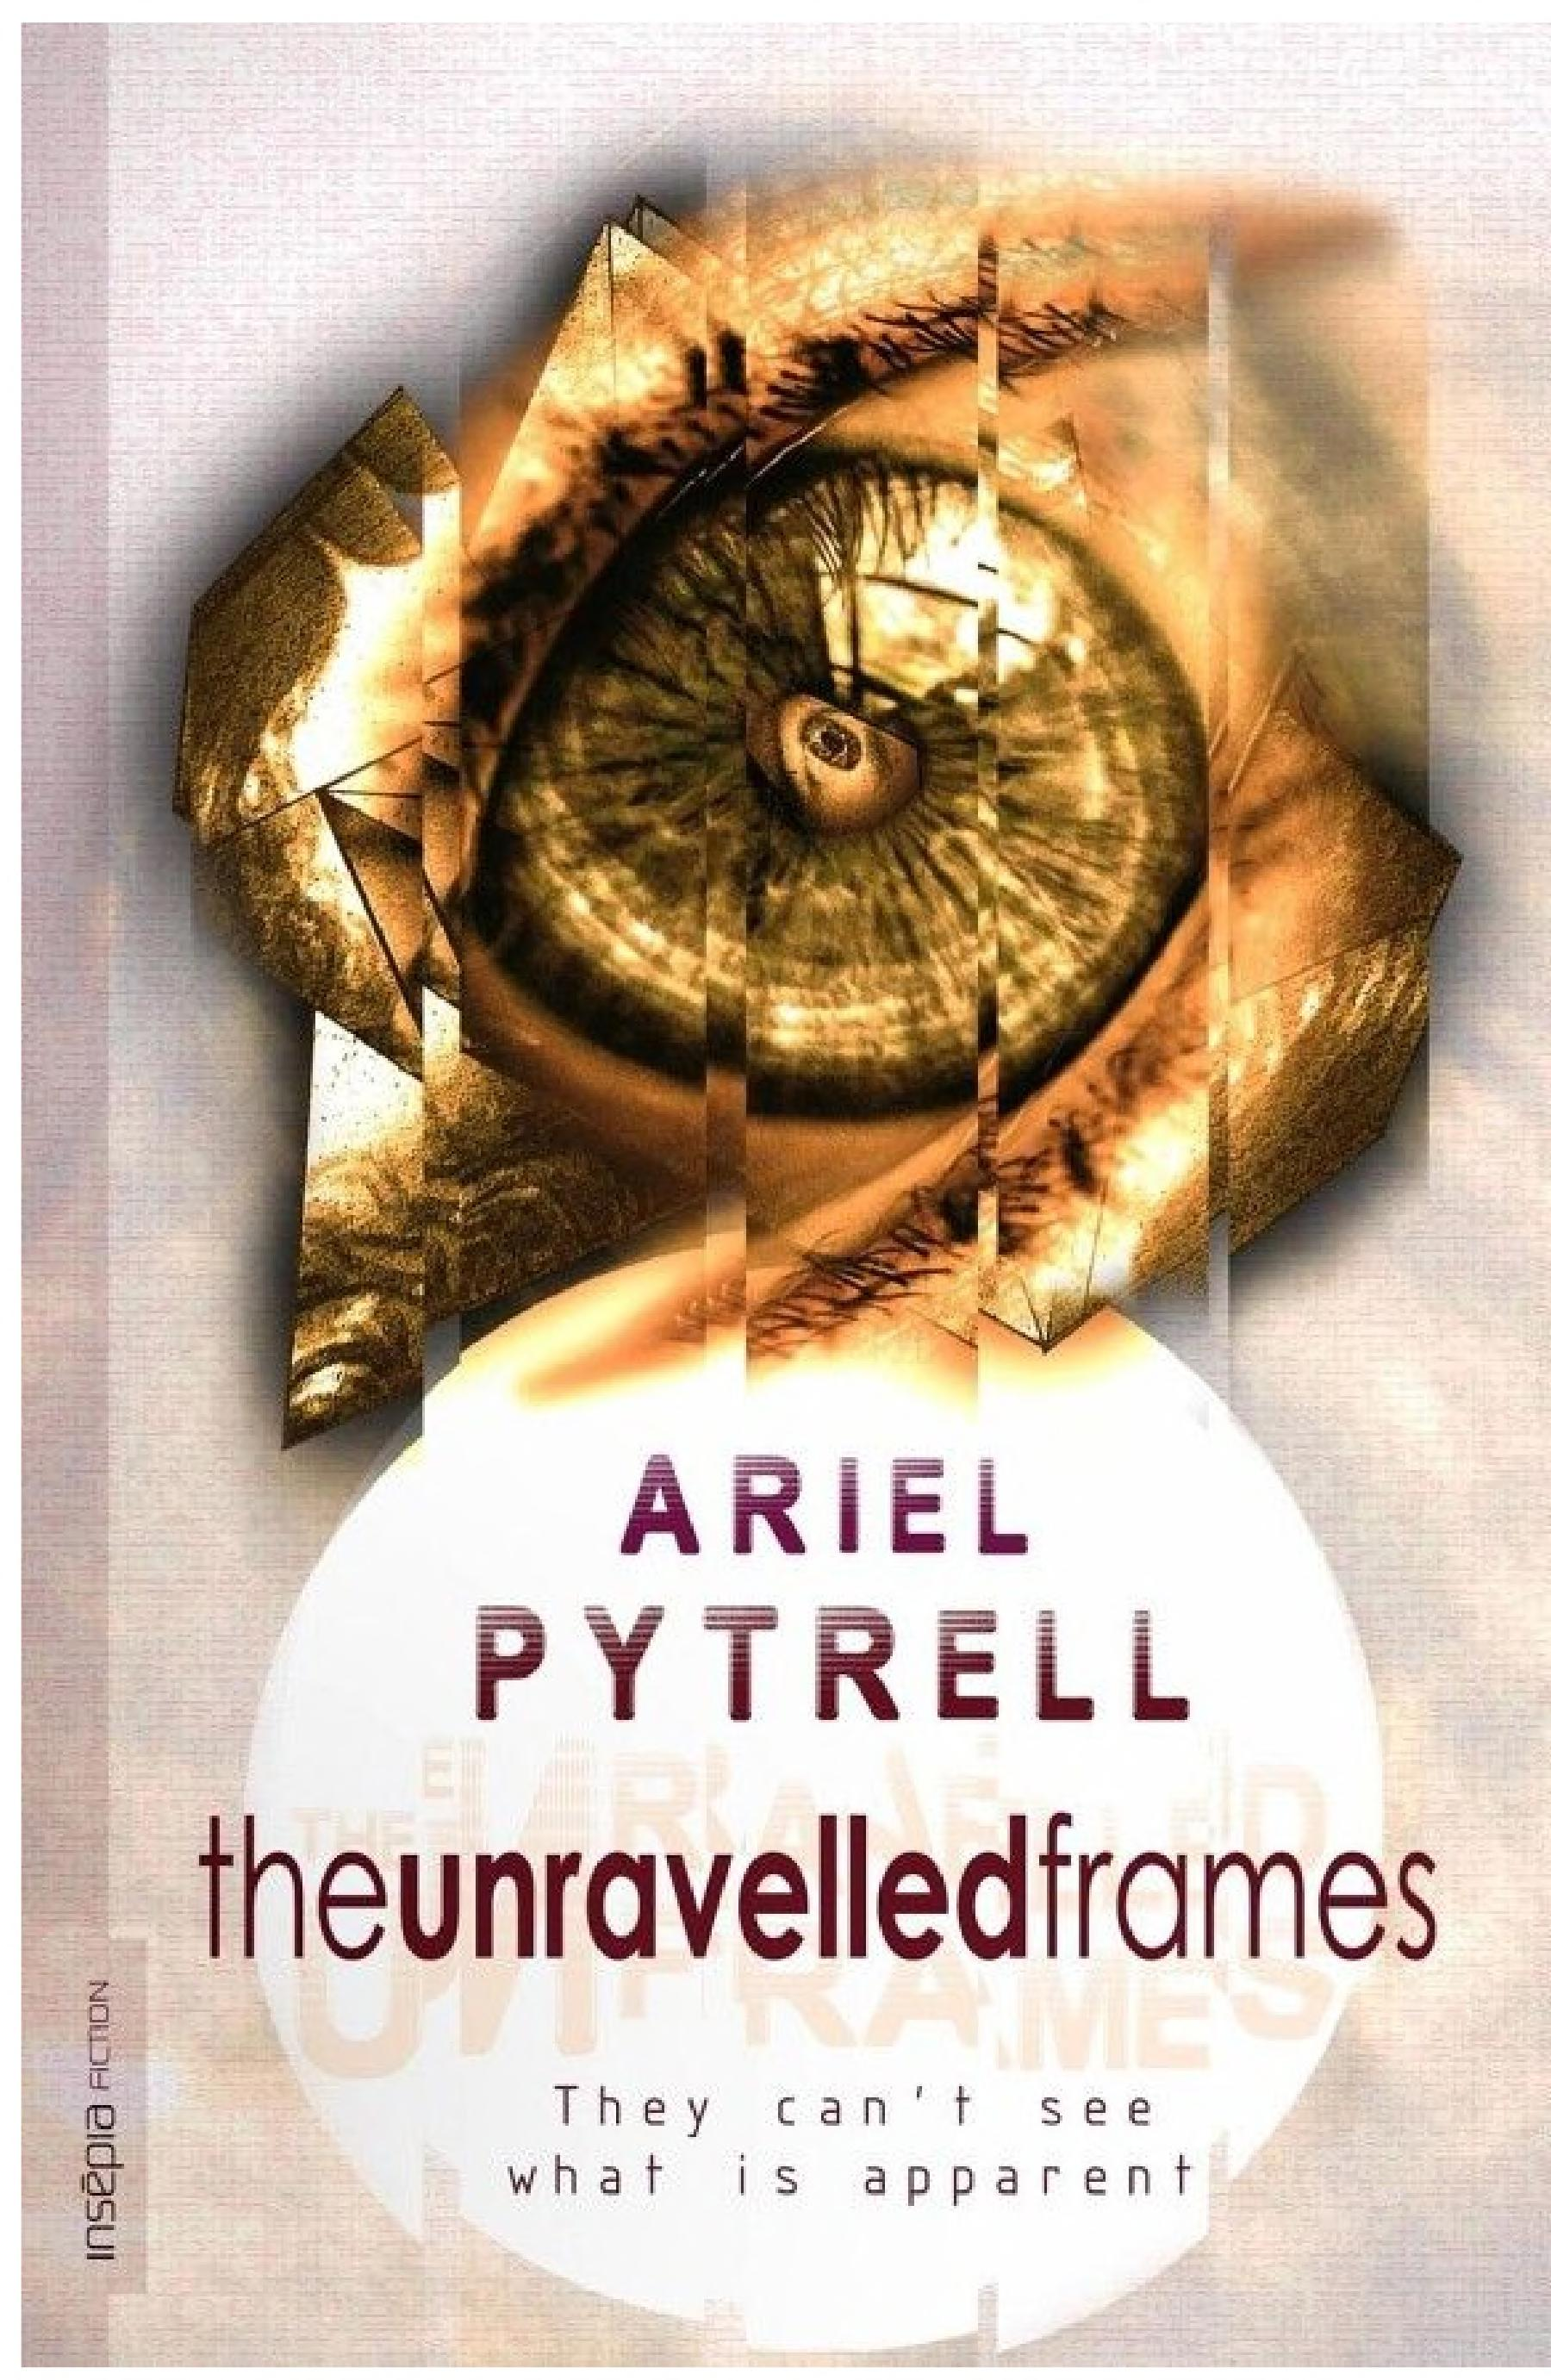 The Unravelled Frames